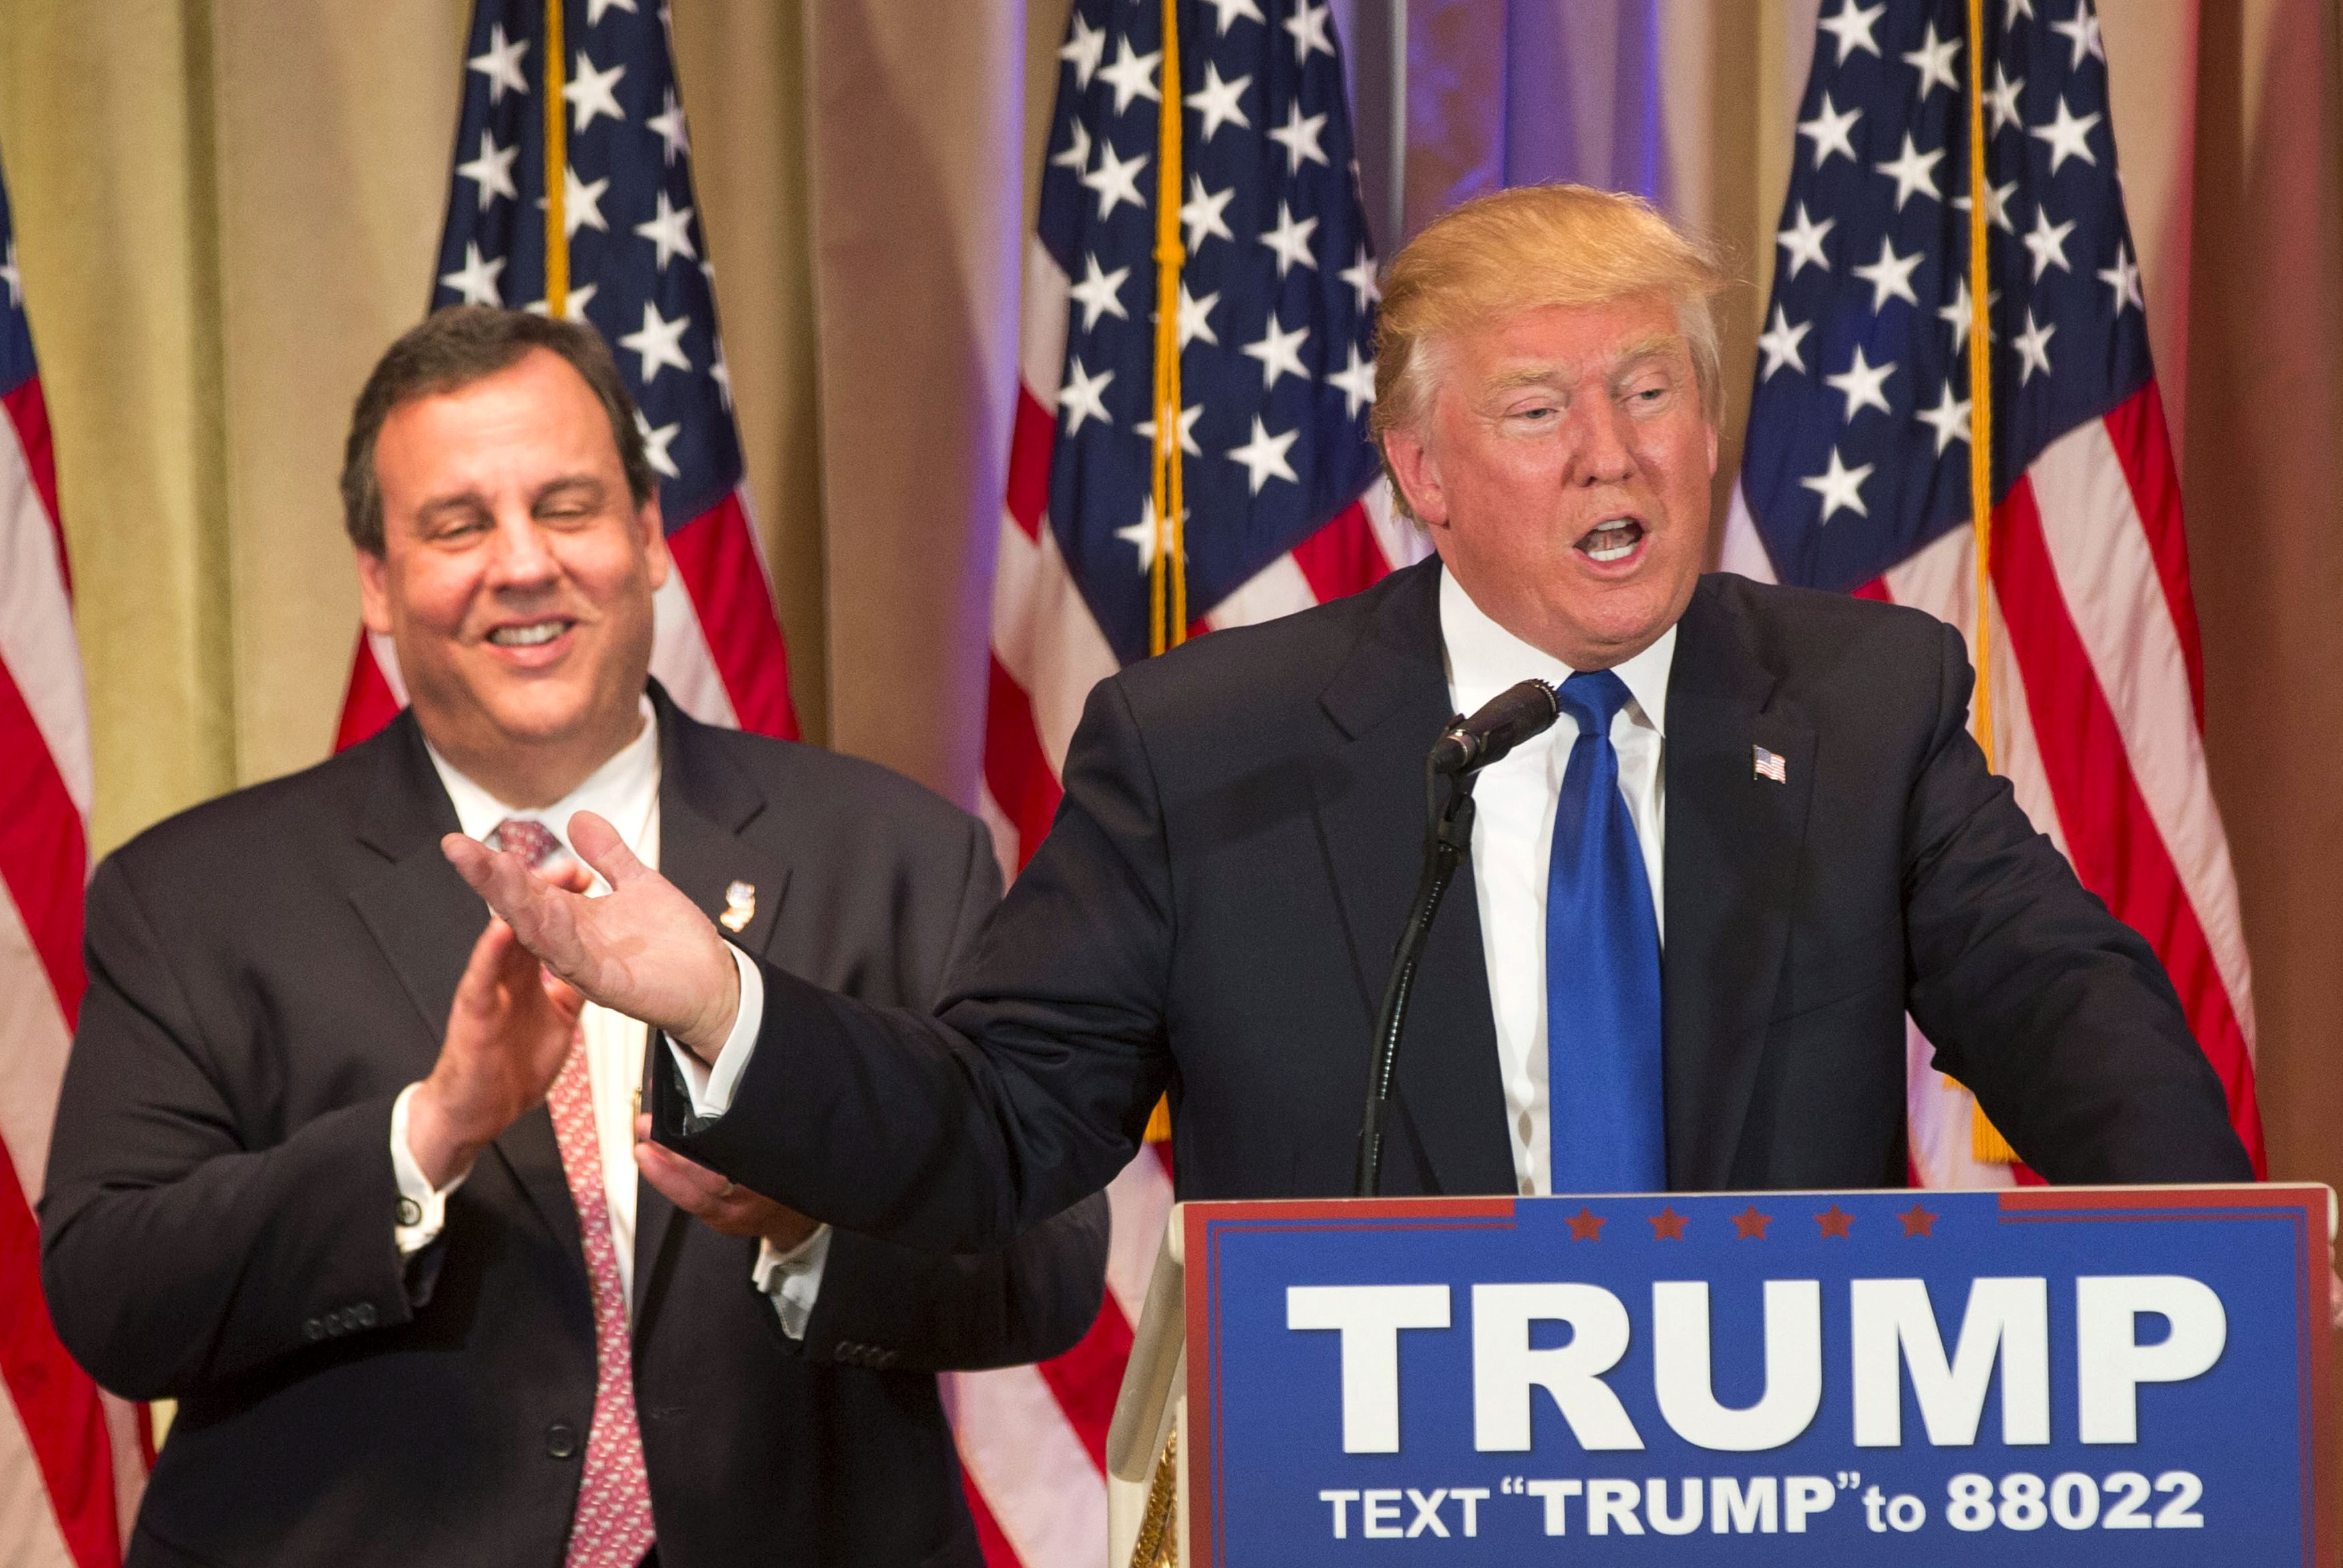 Republican 2016 US presidential candidate businessman Donald Trump (R) speaks, after being introduced by New Jersey Governor Chris Christie (L) at a Super Tuesday campaign event in Palm Beach, Florida, USA, 01 March 2016. The Florida presidential primary is 15 March 2016. EPA/RYAN STONE